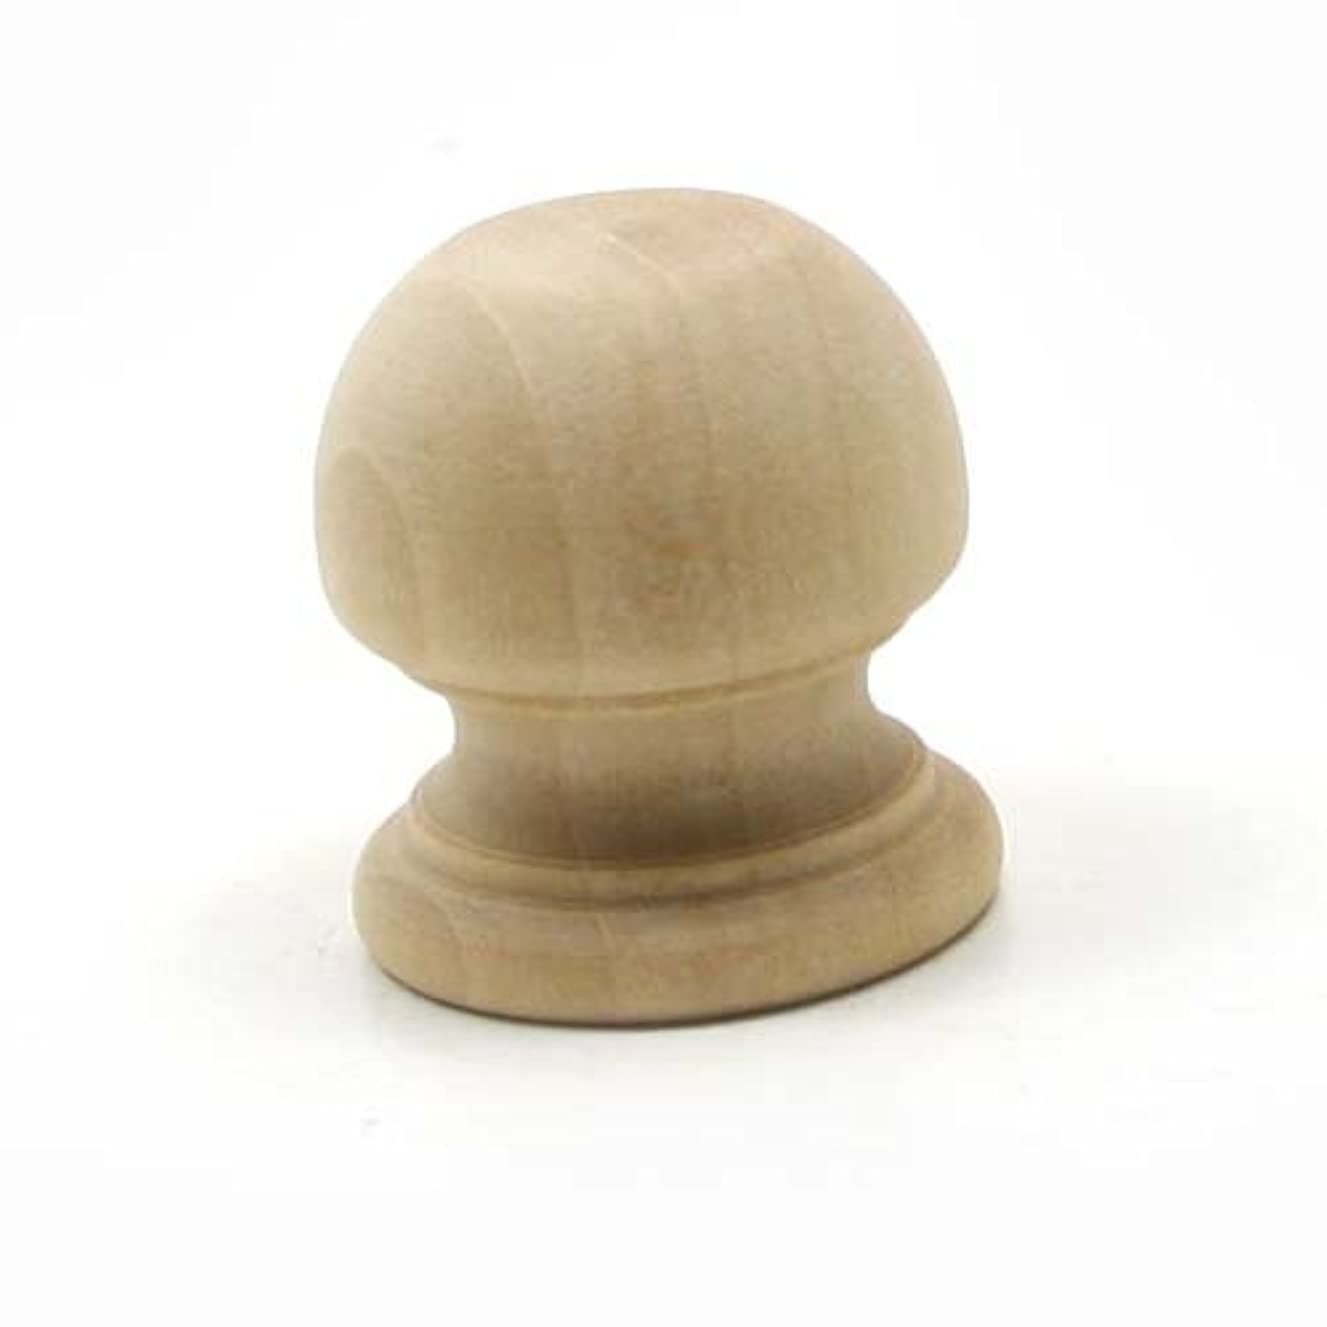 Mylittlewoodshop Pkg of 100 - Finial Dowel Cap - 1-1/16 tall with 1/2 inch hole unfinished wood (WW-DC8005-100)